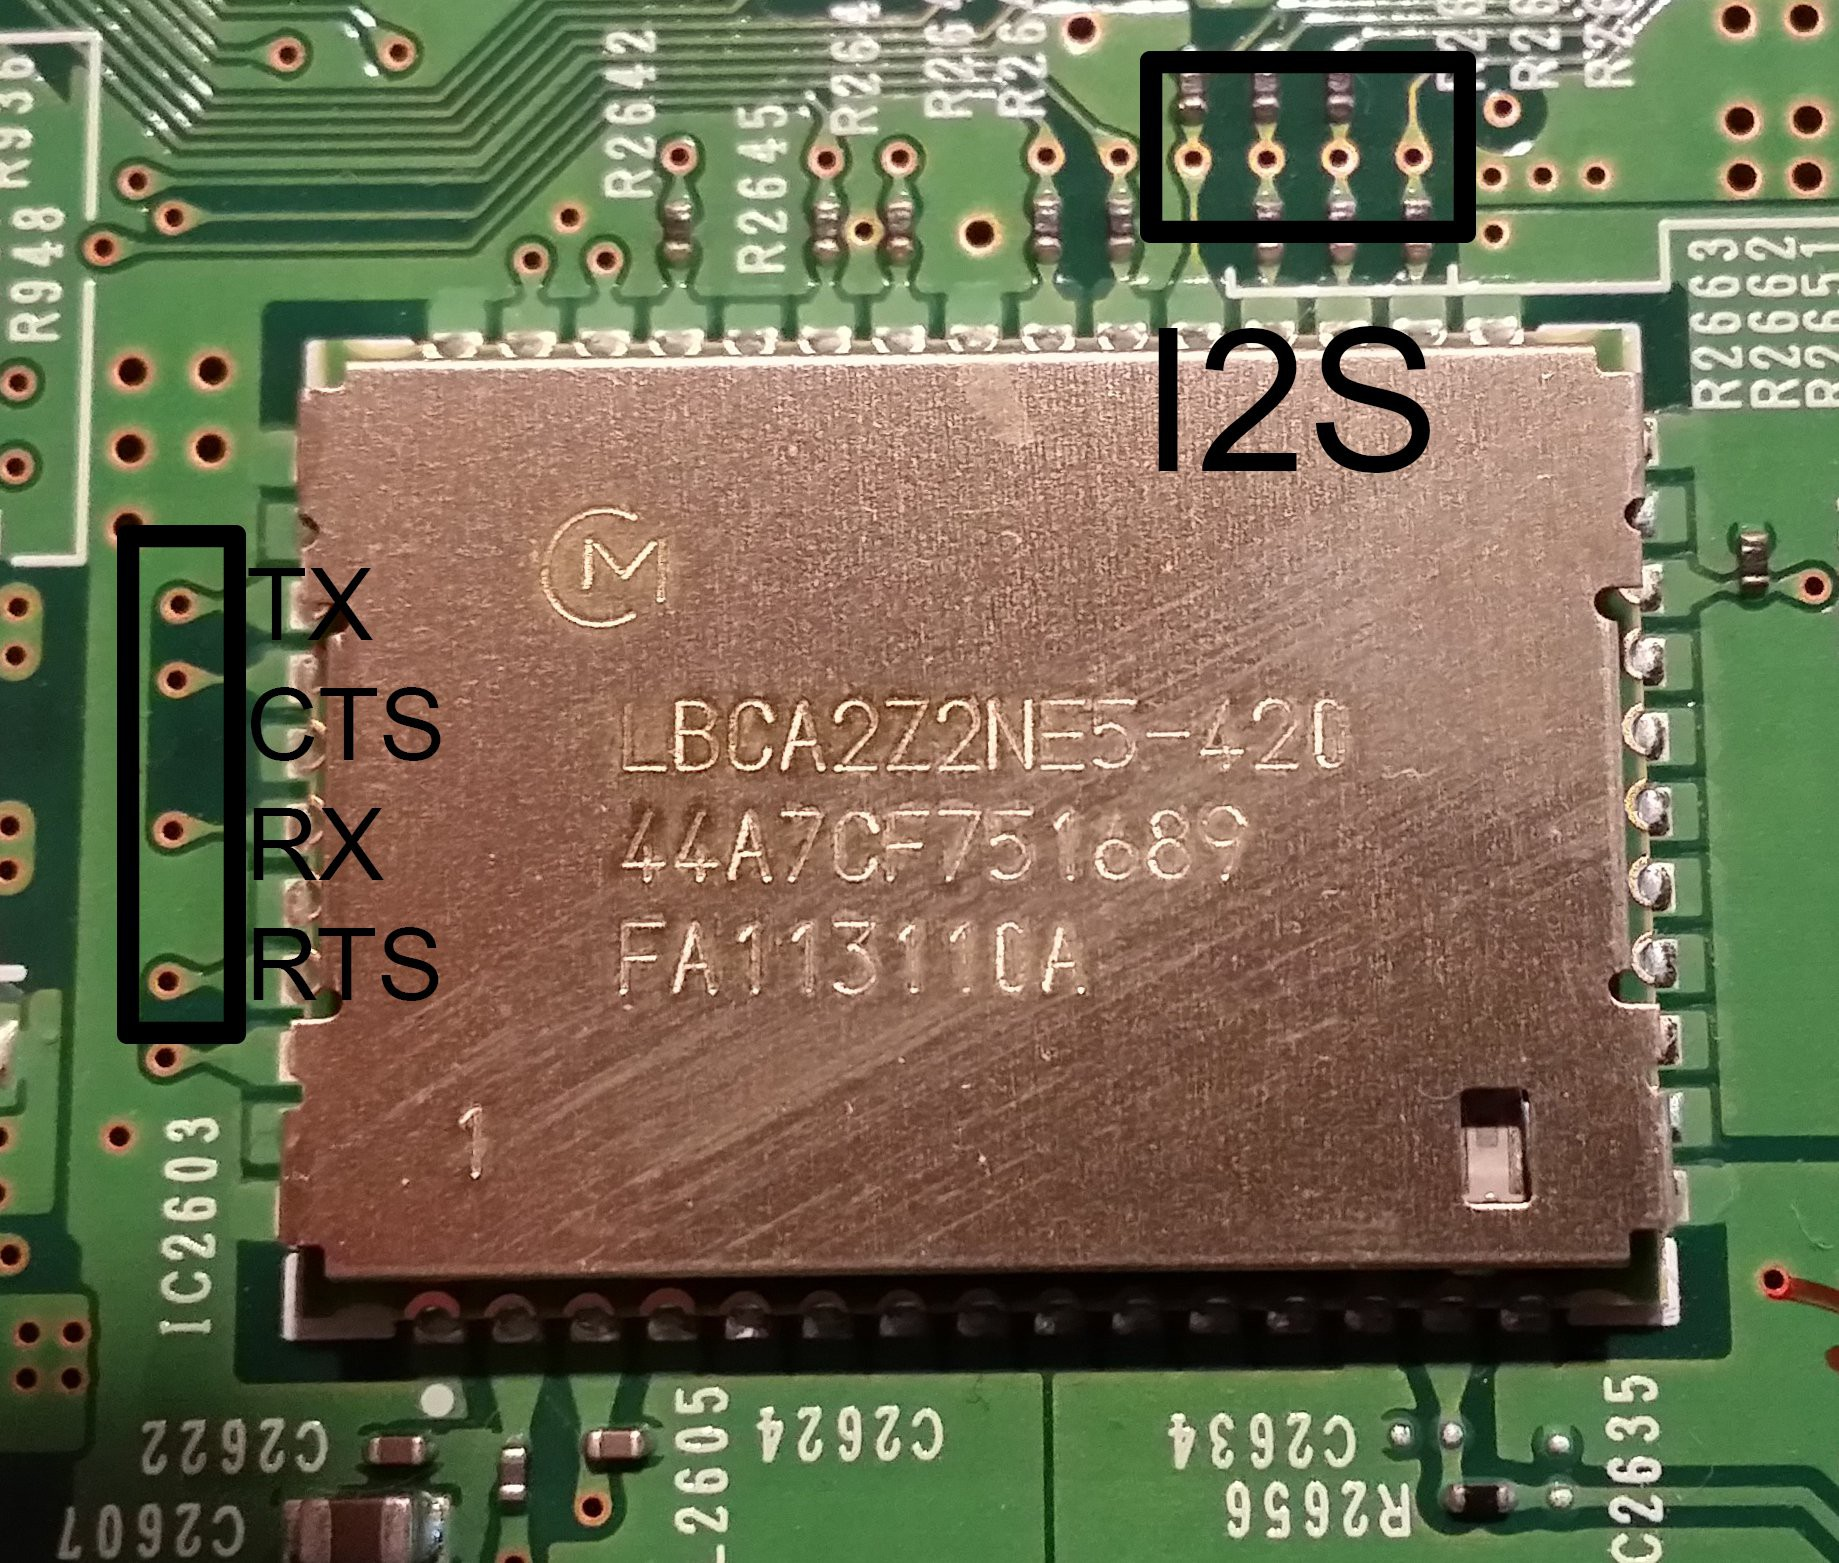 Rn 52 Module Not Going To Be Used Details Wolfson Pi Audio Card Circuit Board For Raspberry Cancel Reply Its Worth Noting That This Does Have A Built In Antenna As The There Is Ufl Connector Nearby Mounted